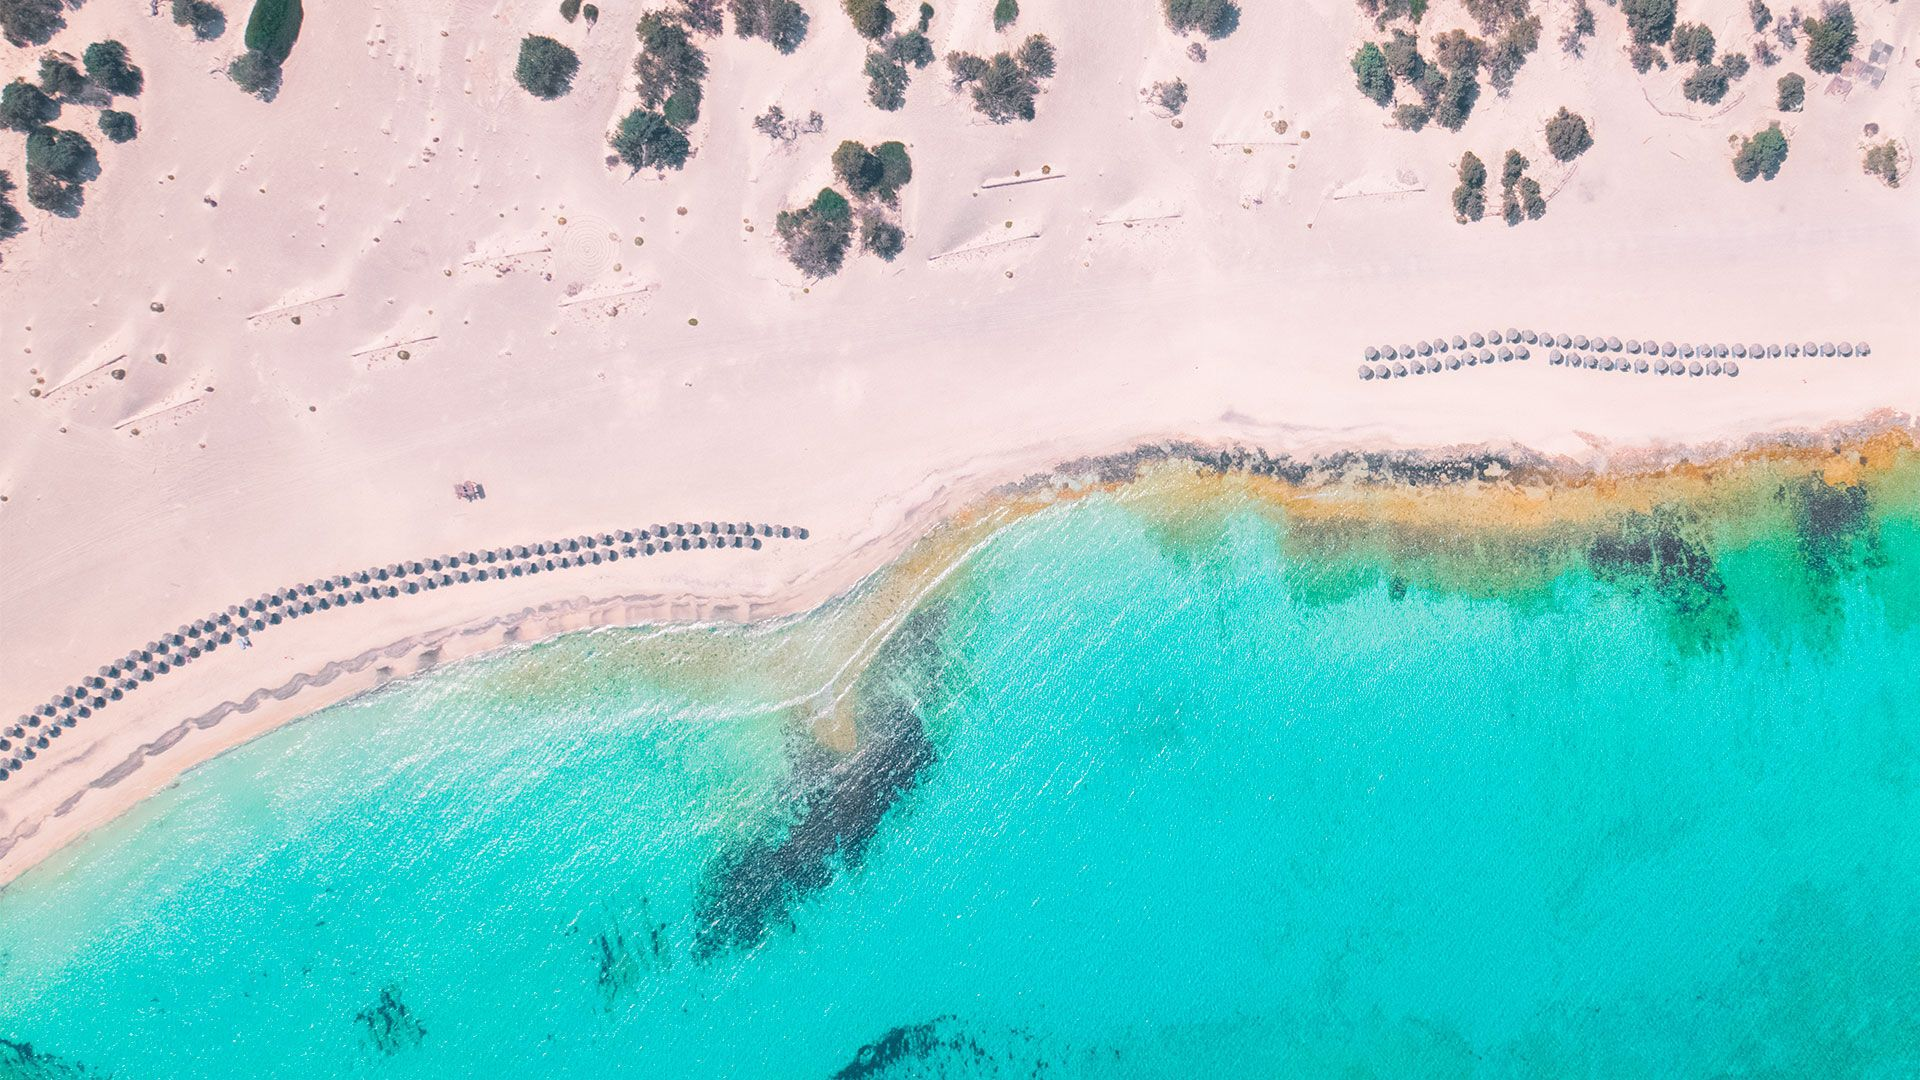 Birds eye view of Chrysi island